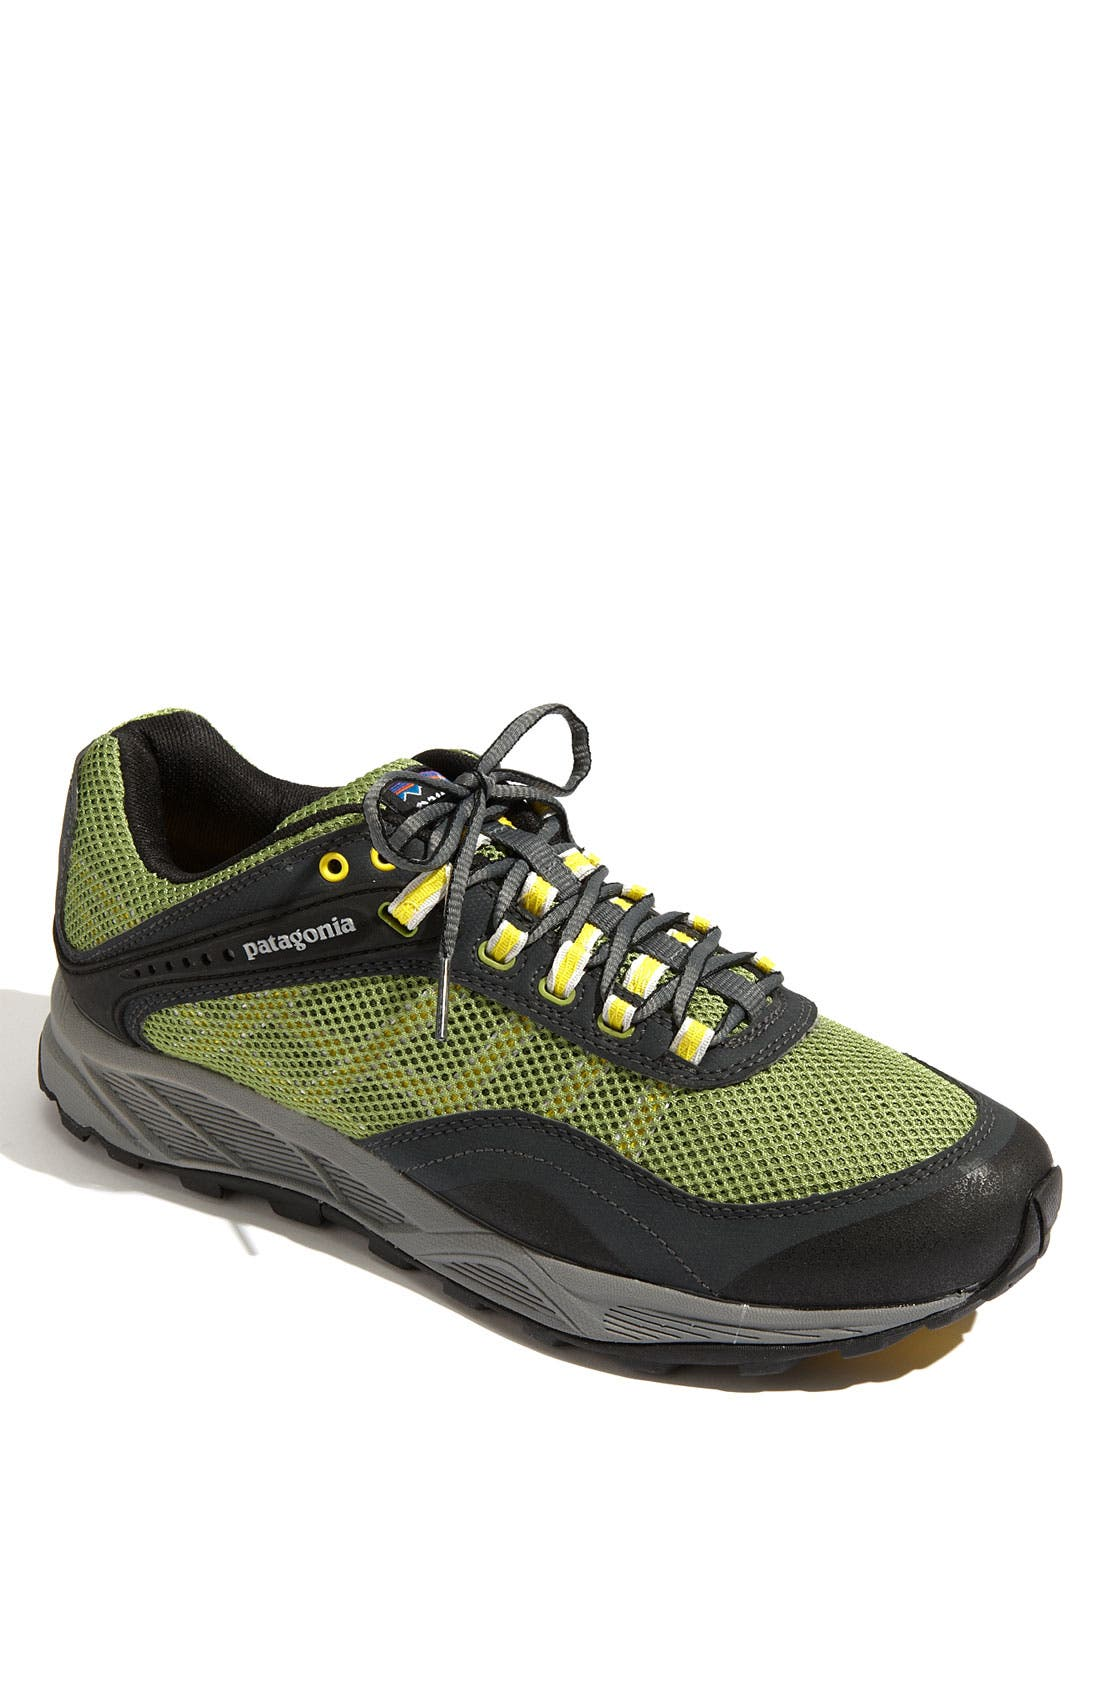 Main Image - Patagonia 'Specter' Trail Running Shoe (Men)